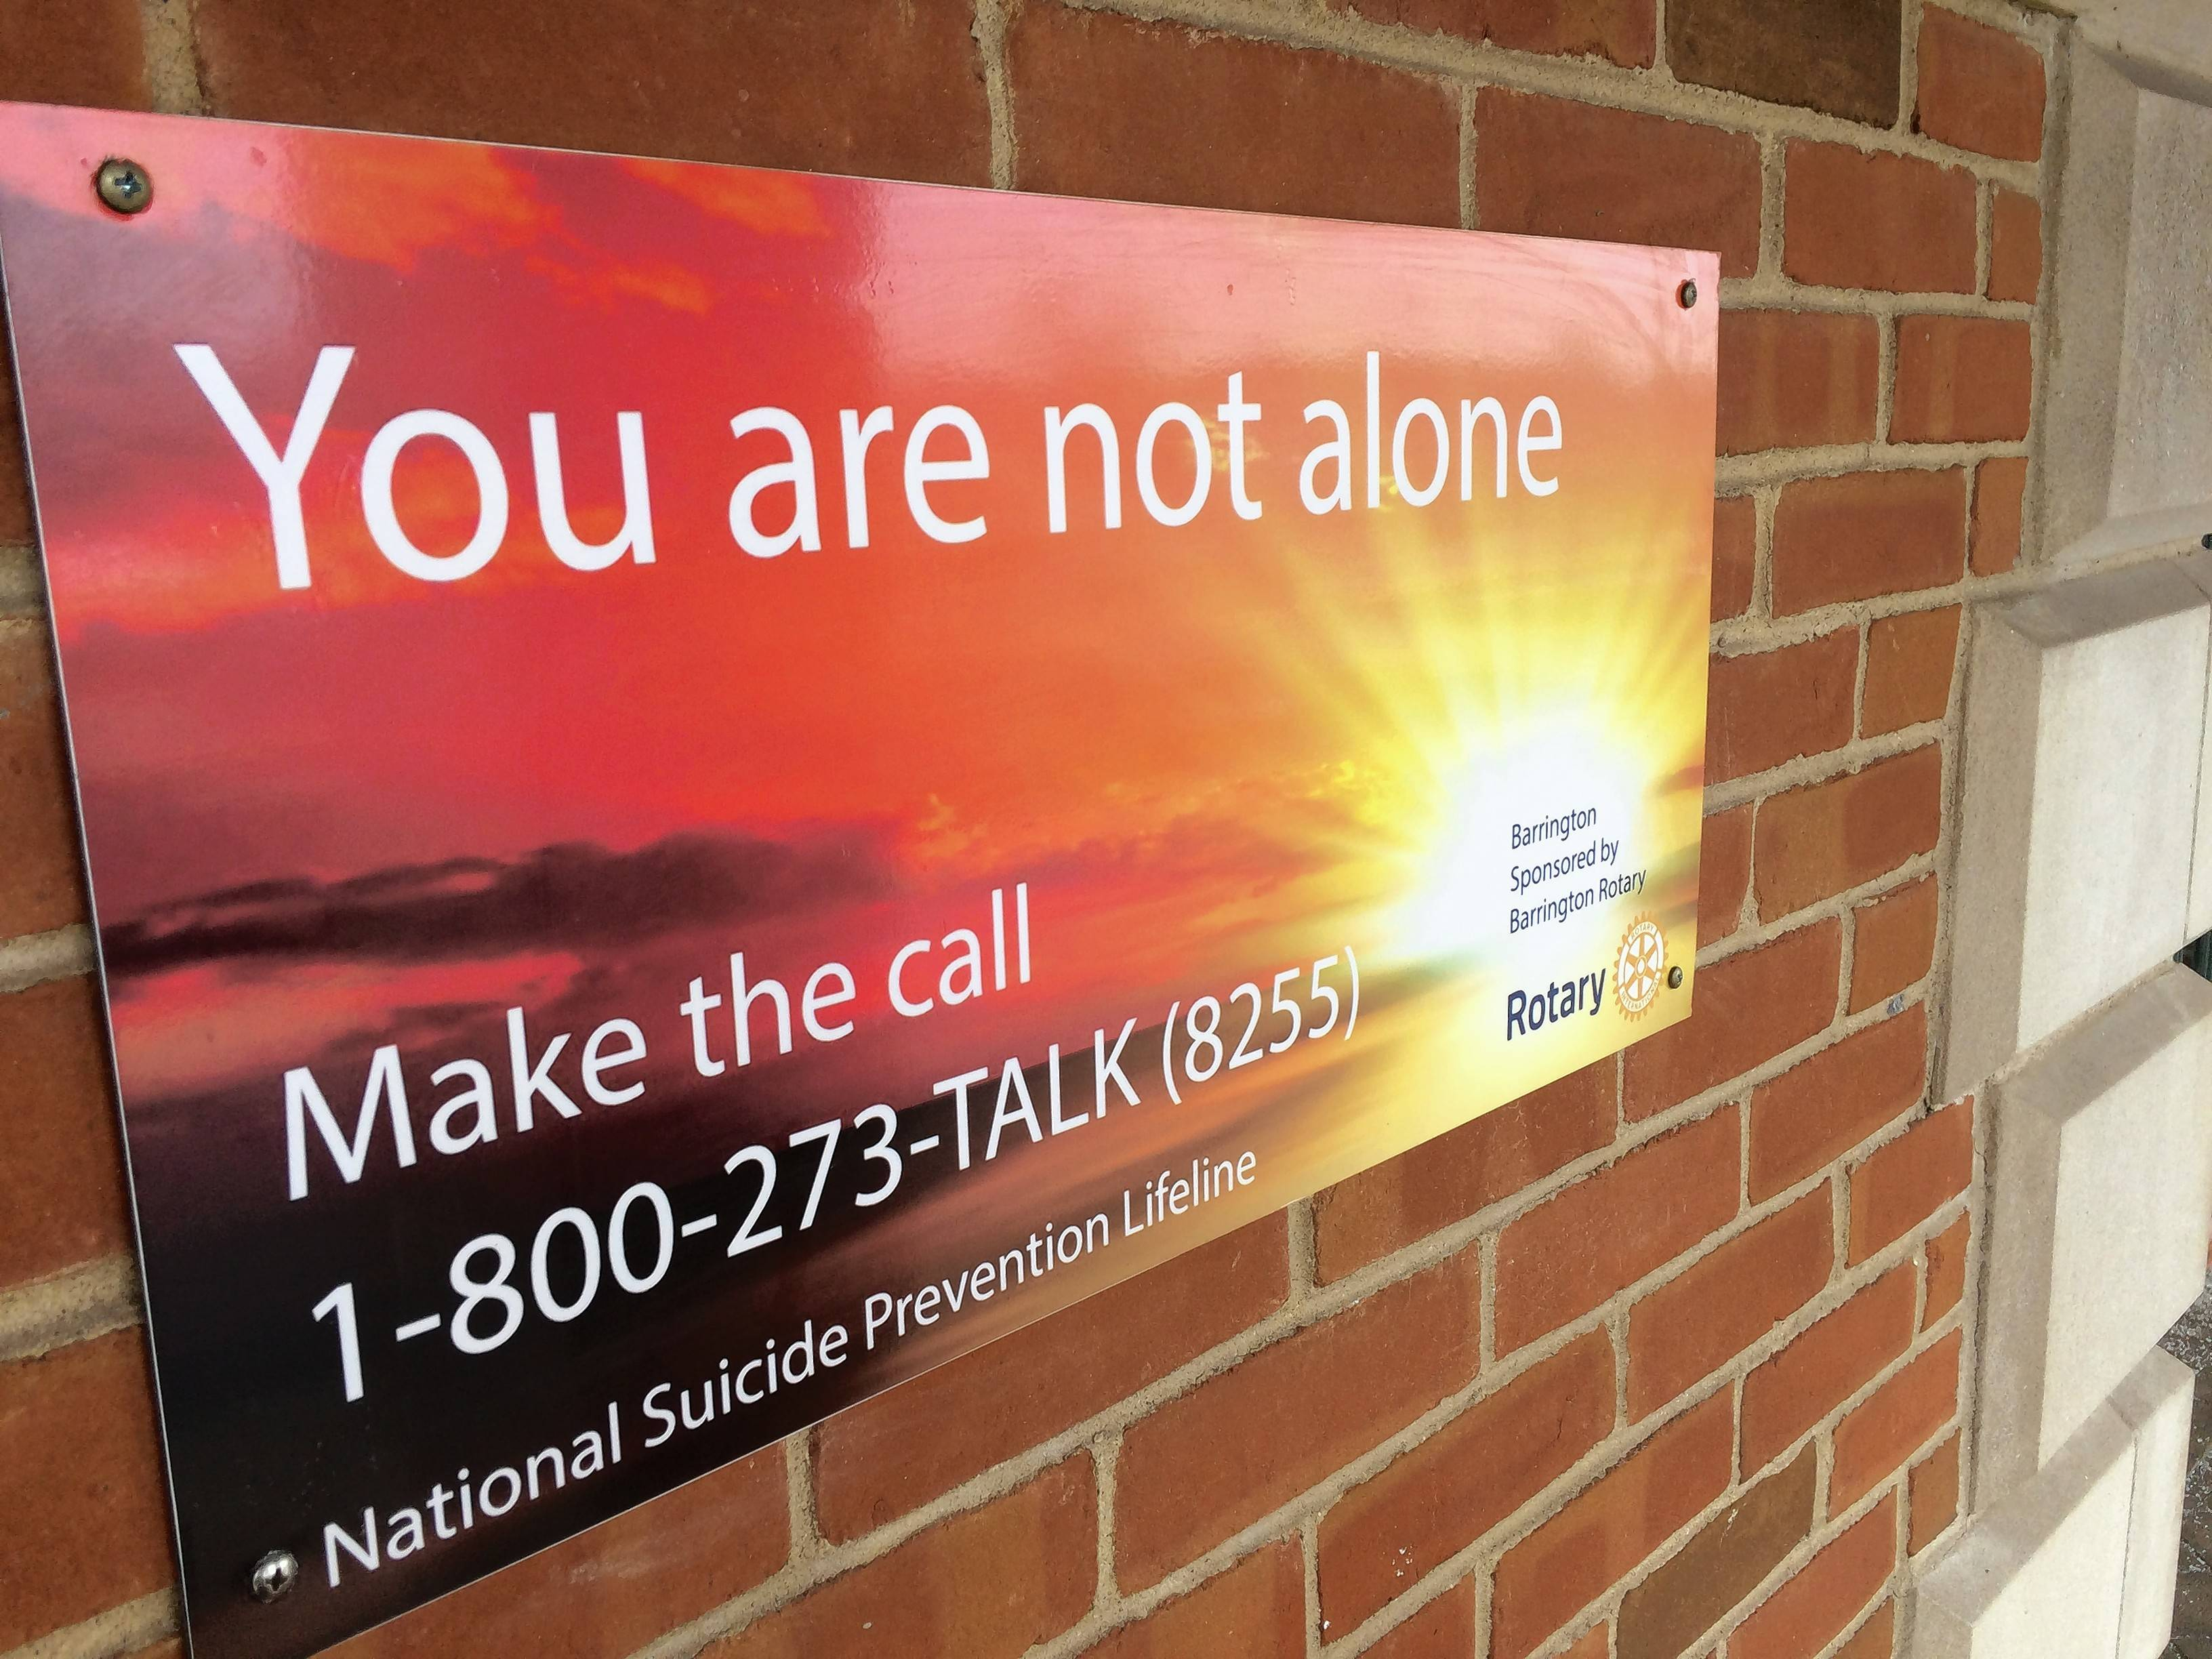 Signs like this one attached to an outside wall of Barrington's Metra station are going up at stops along the Union Pacific Northwest Line in an effort to encourage people in need to seek help. Barrington's Rotary clubs are behind the initiative.